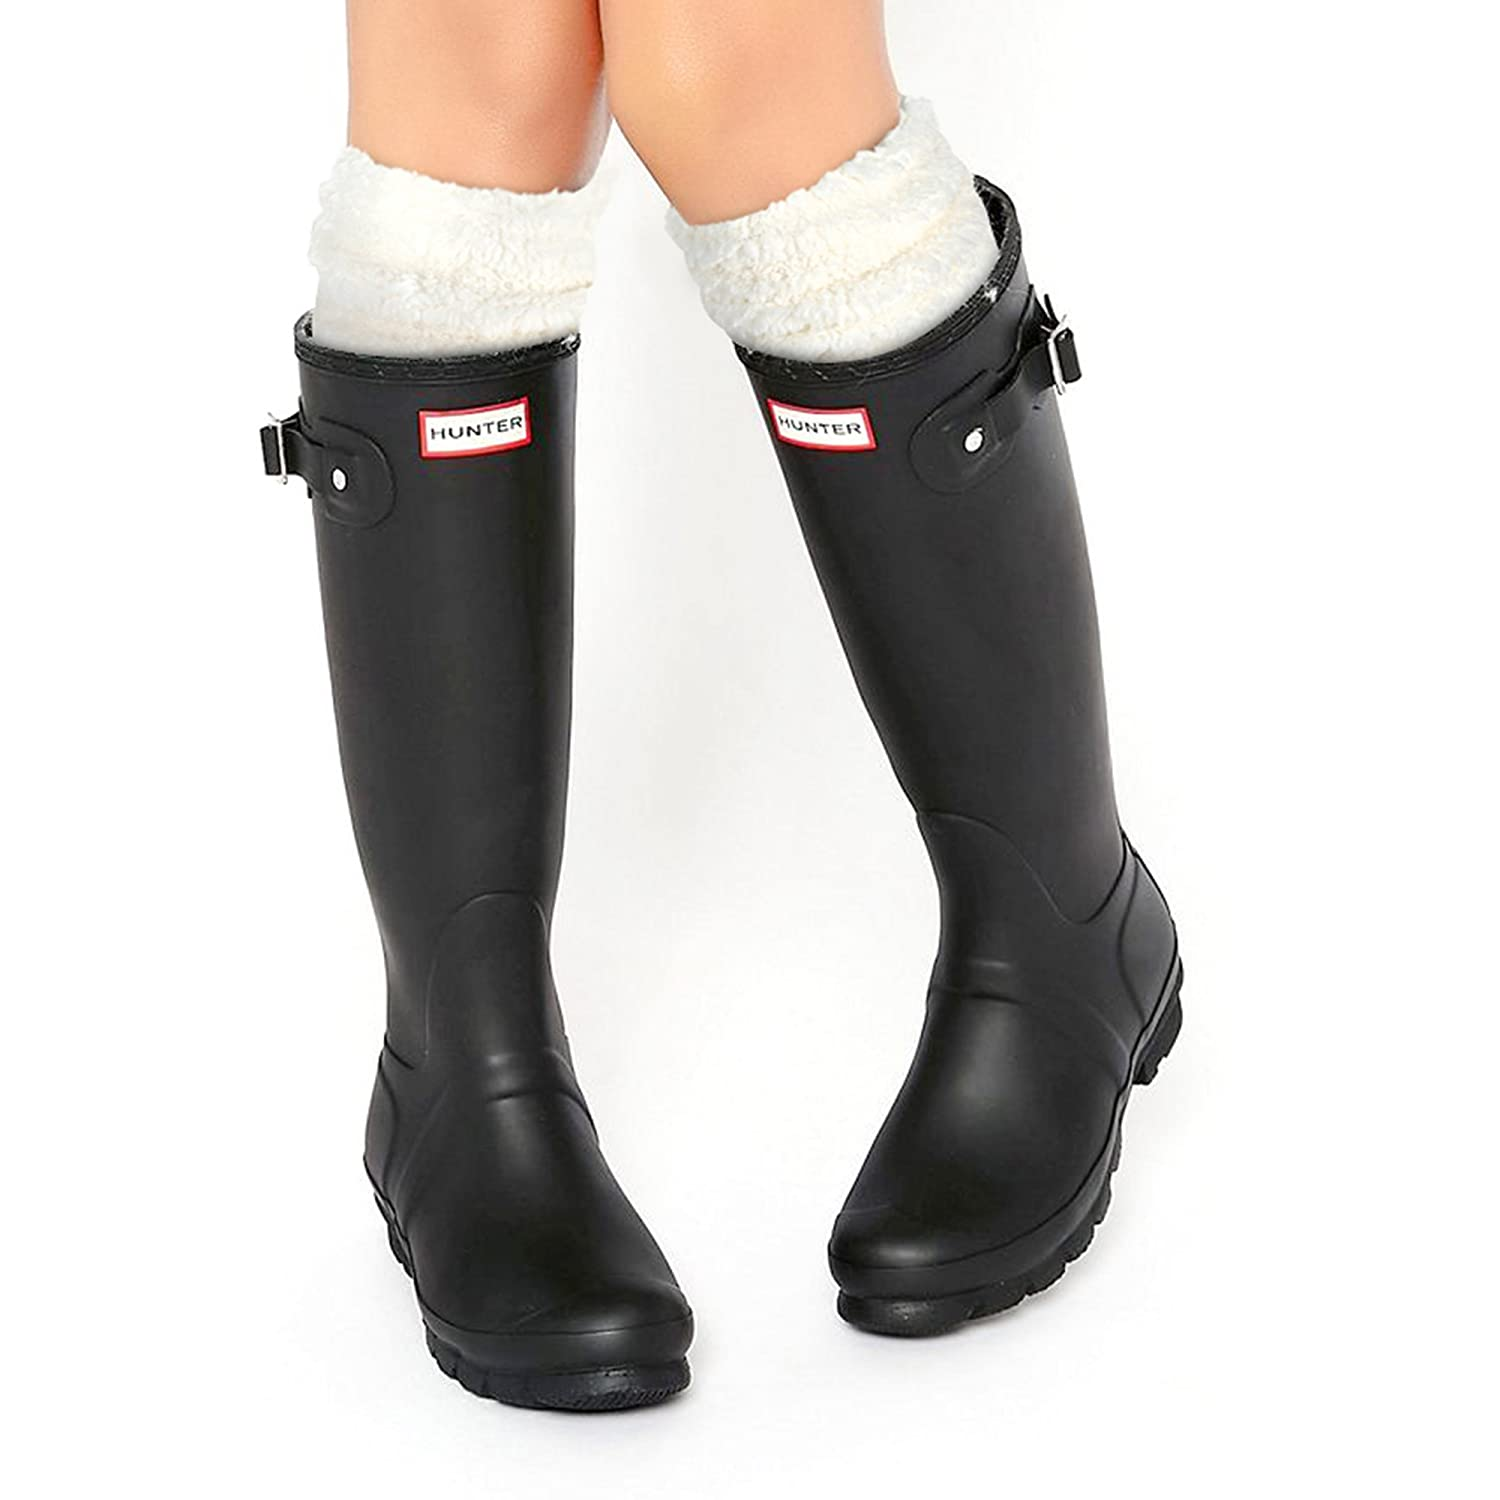 4c9d3ecd776 TPLB Thermal Fleece Welly Socks Compatible for Hunter Tall Rain Boots